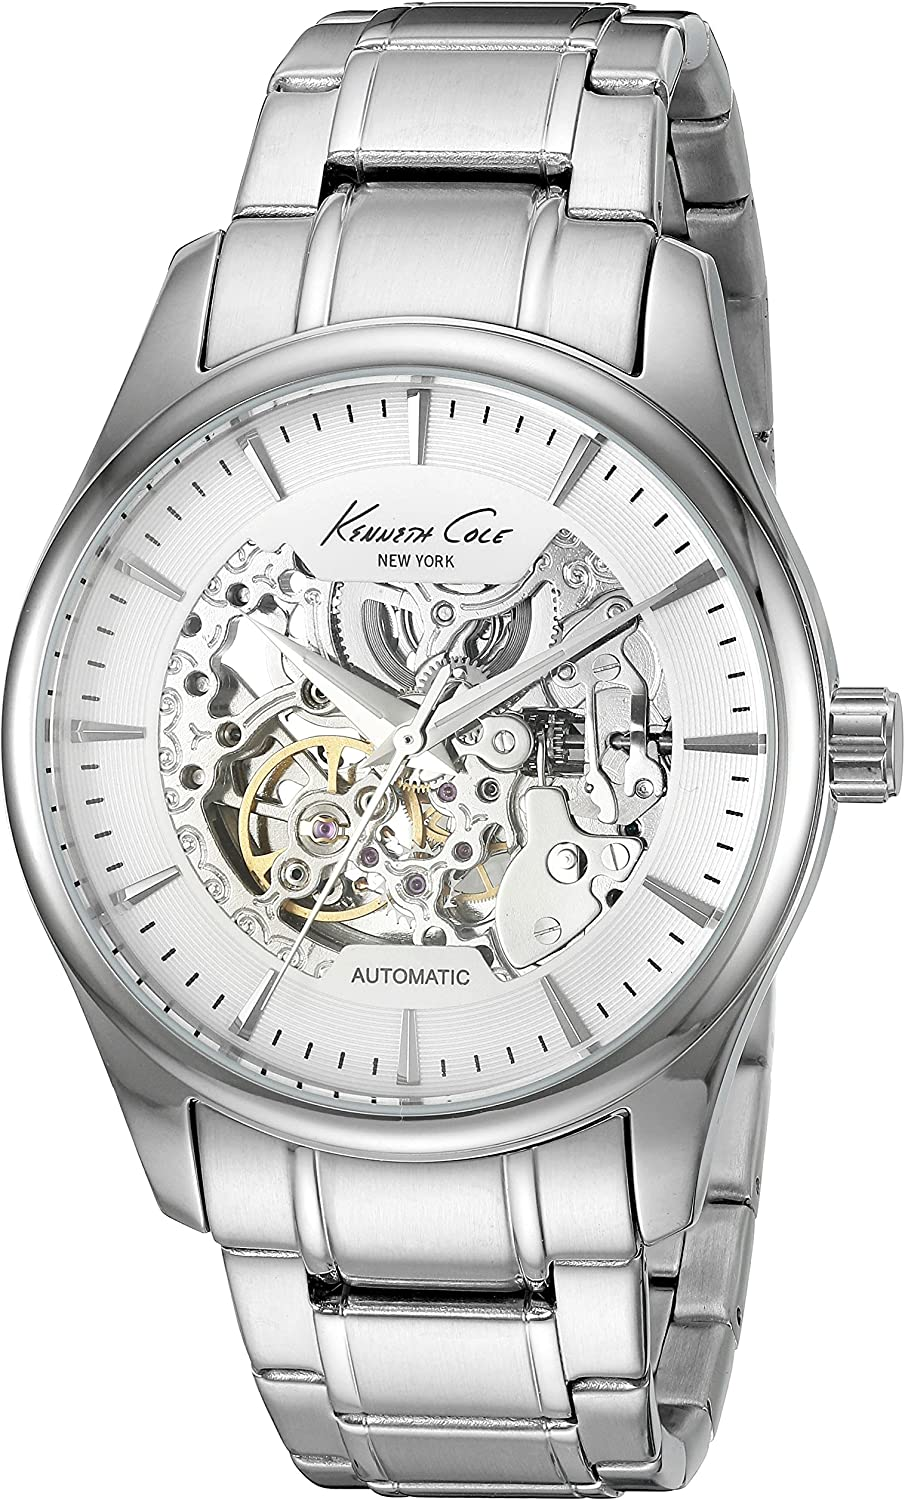 Kenneth Cole New York Men s Automatic Automatic Stainless Steel Dress Watch Model 10027200